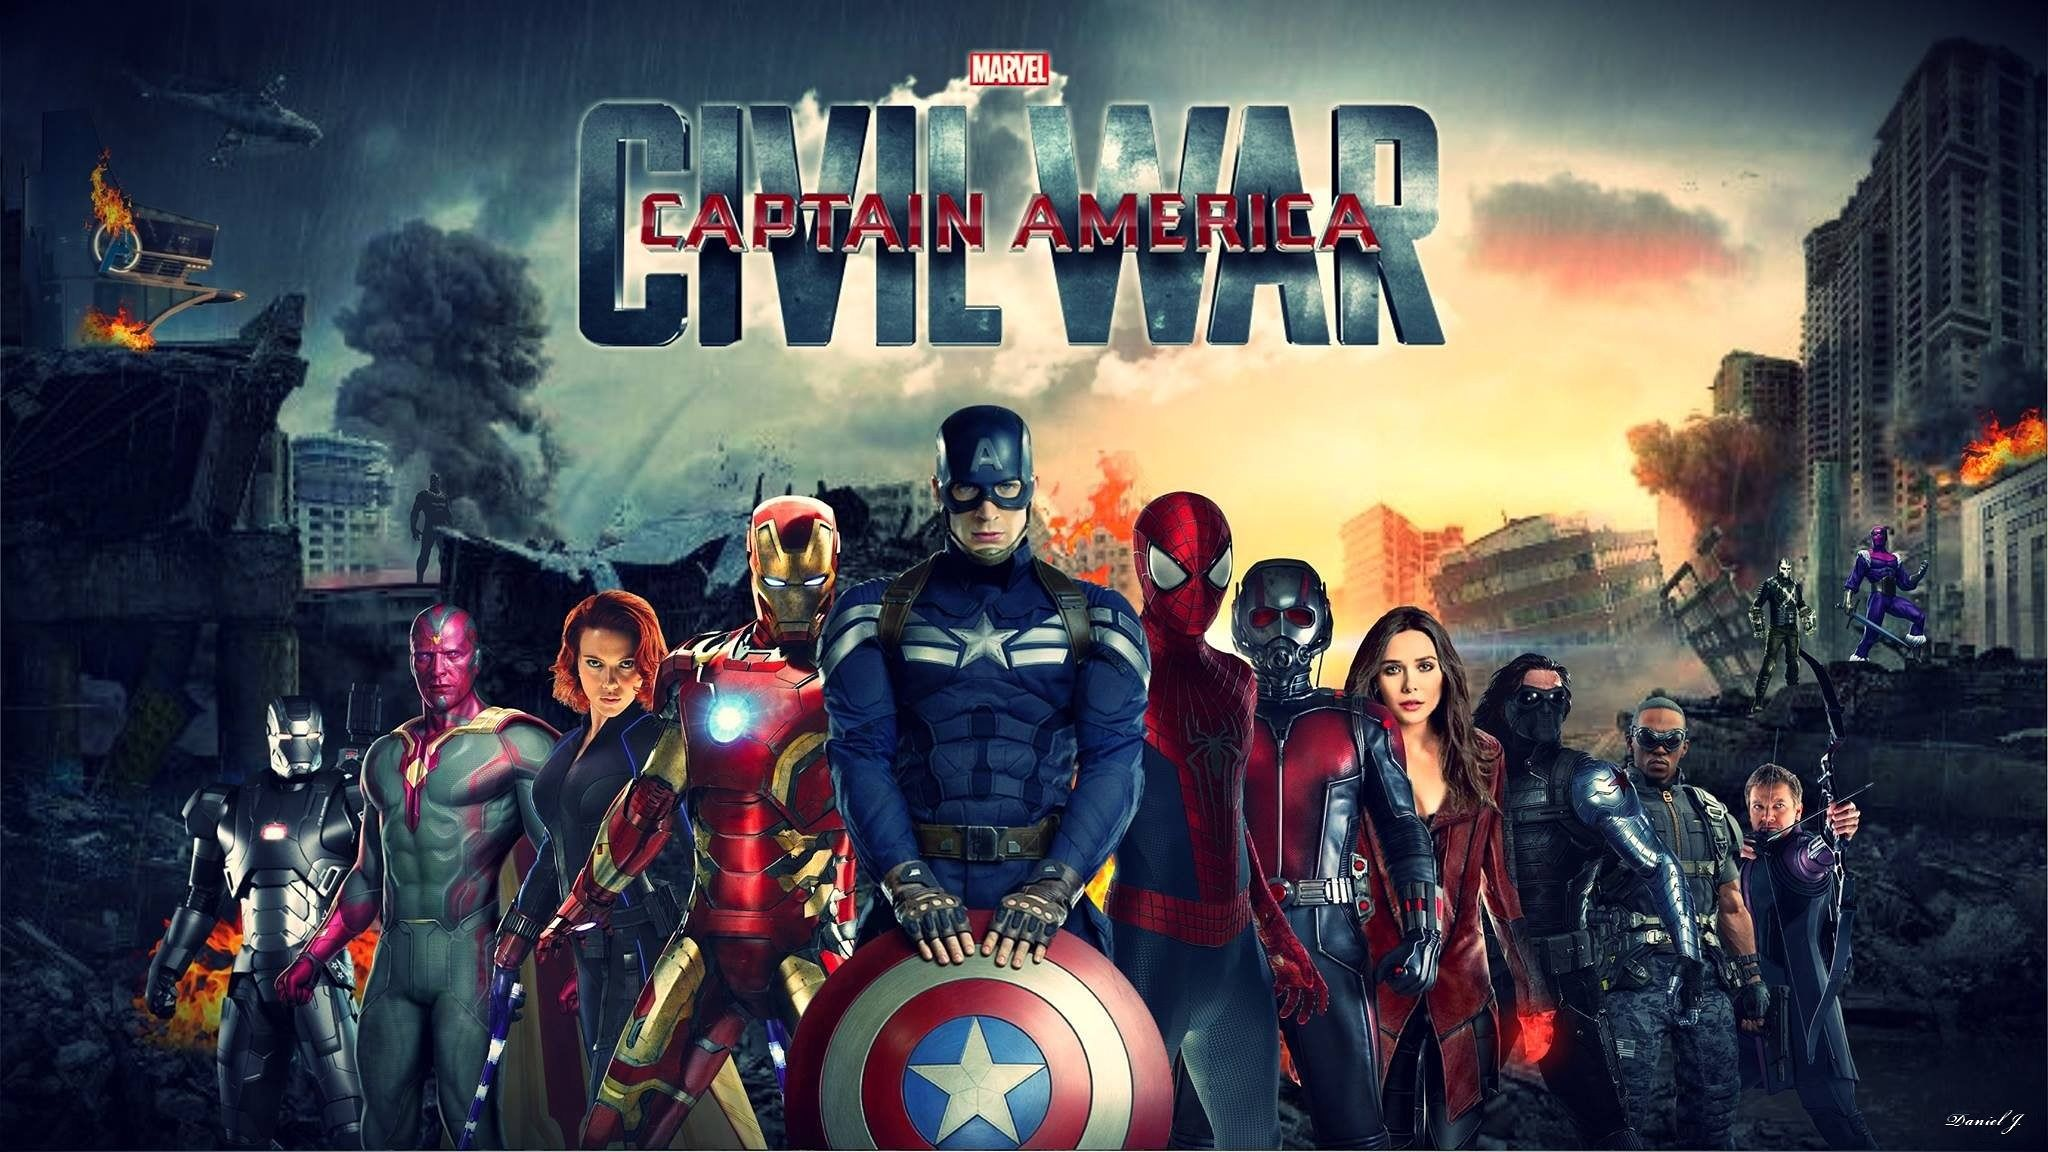 Captain America Civil War Hd Wallpapers 7wallpapers Net